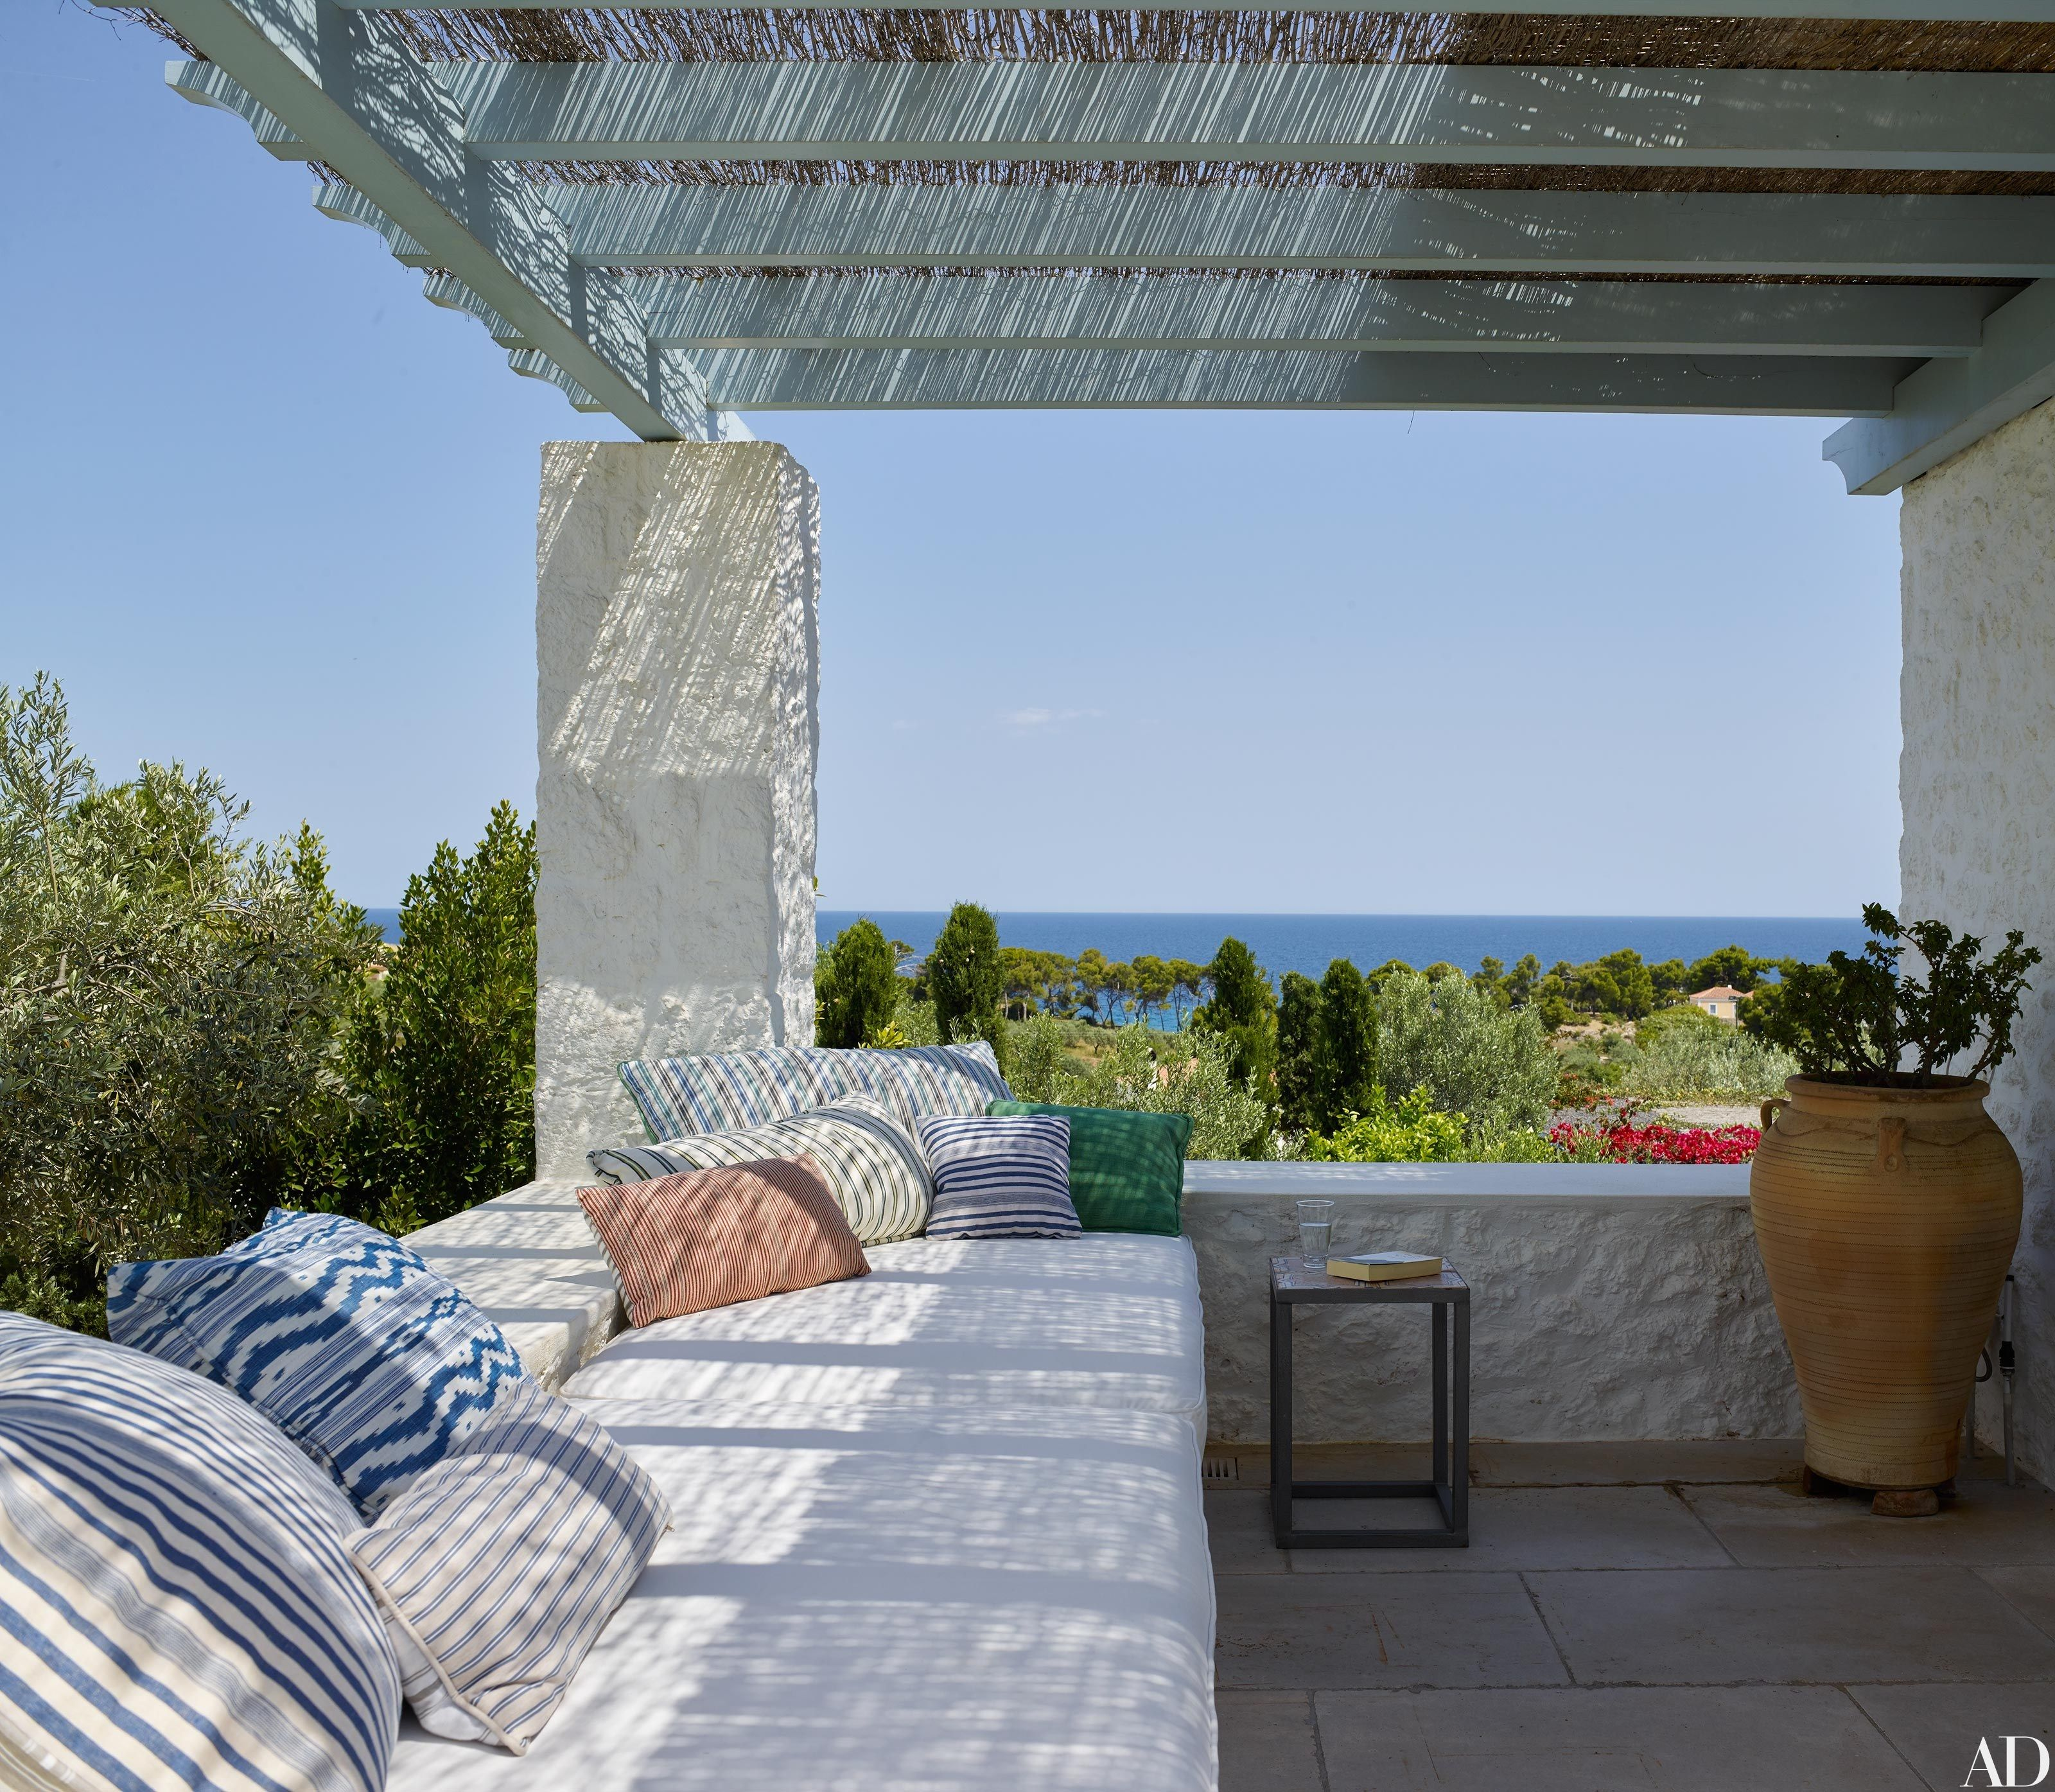 A Compound Of Villas In The Greek Islands Is Transformed For